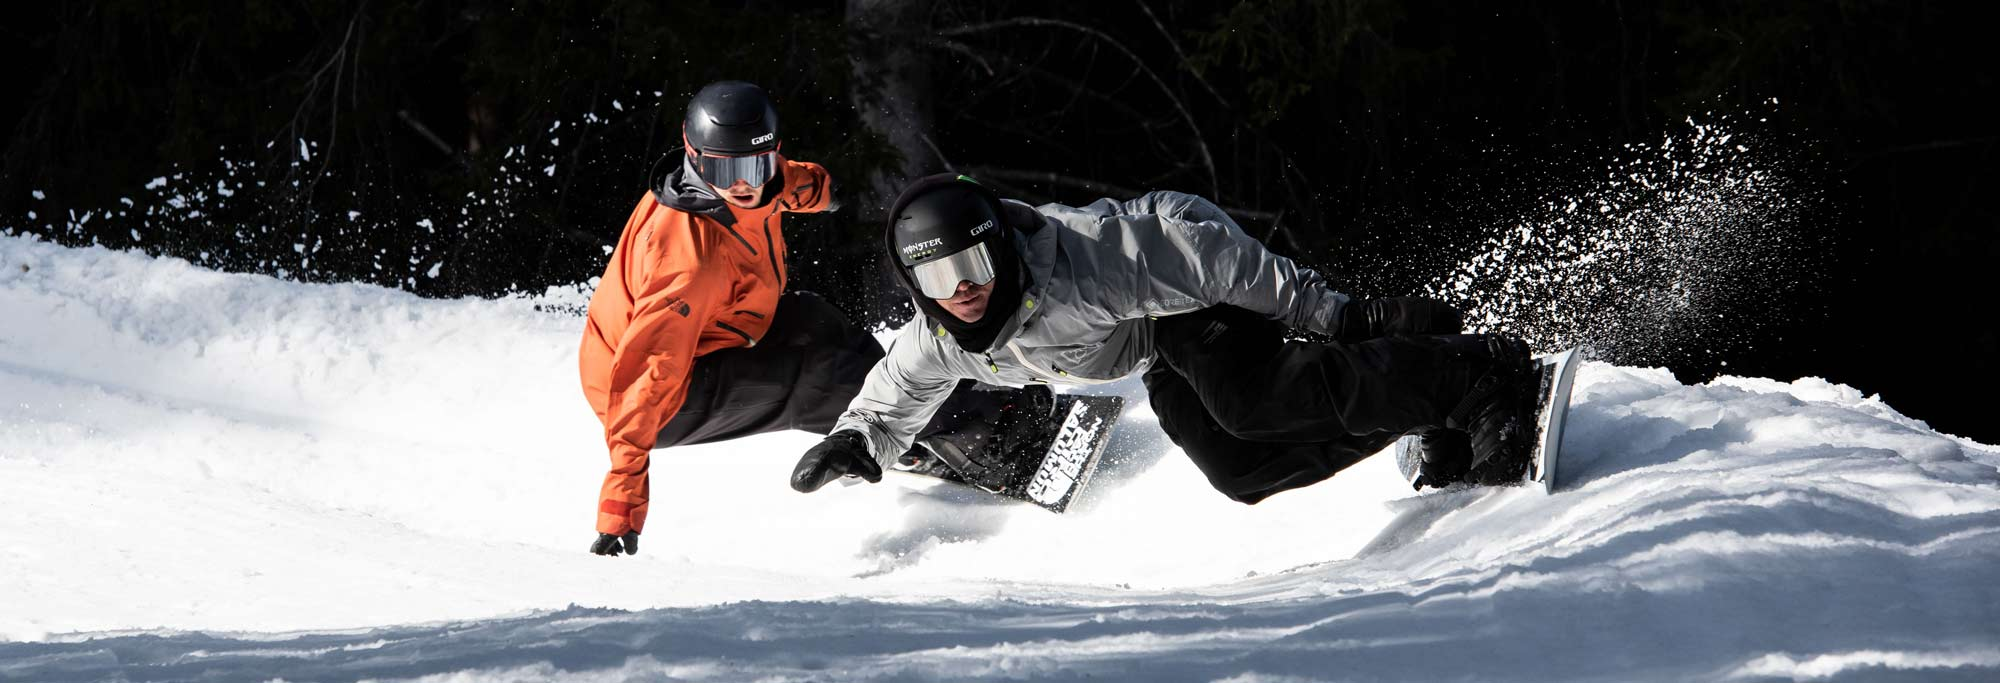 Snowboard Buying Guide